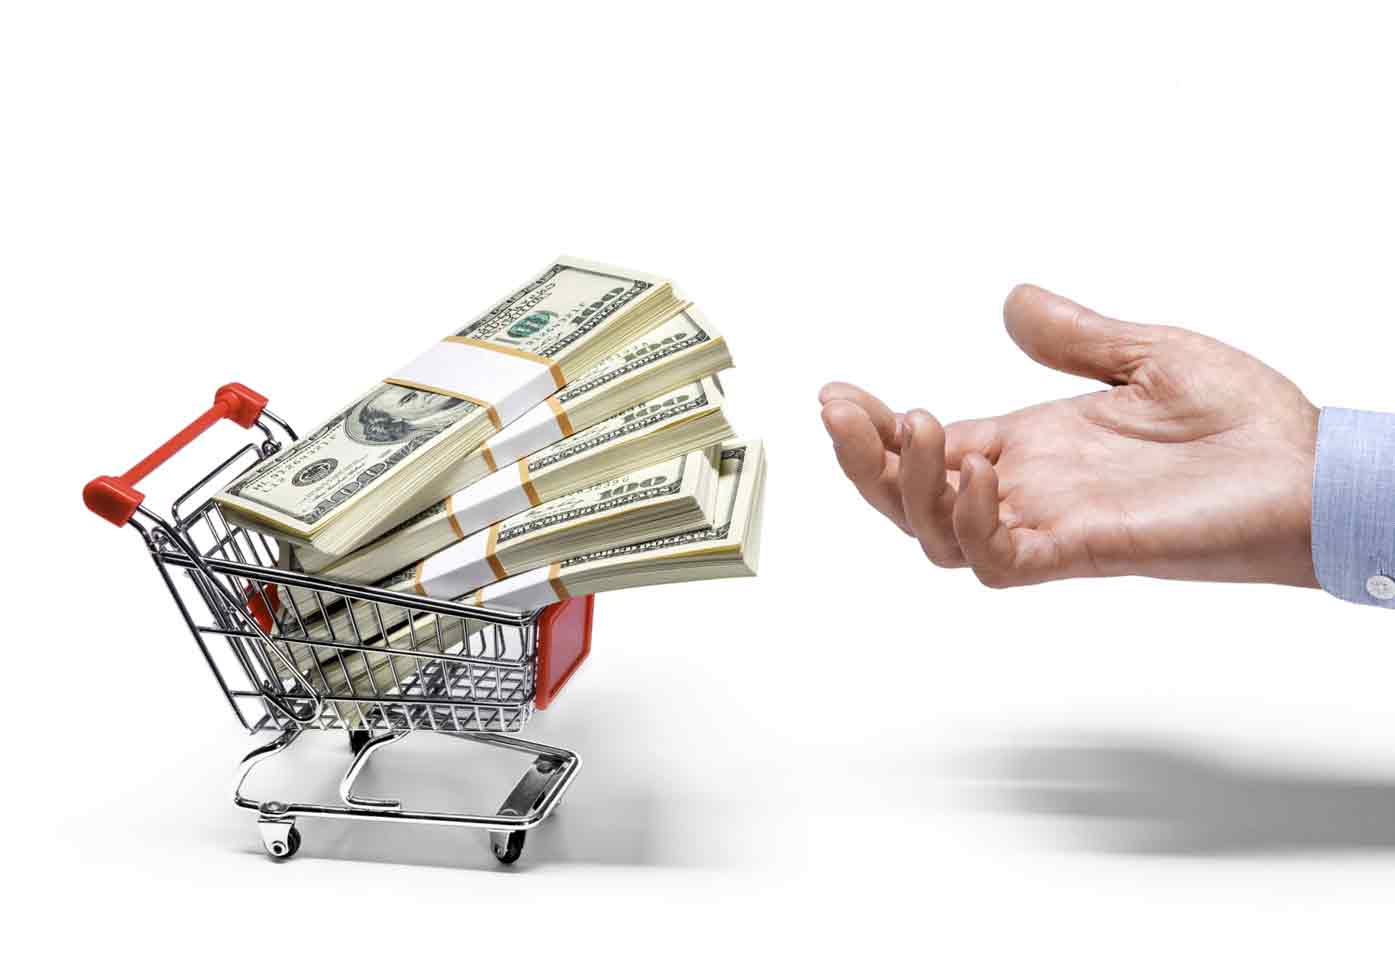 Cash loans only provide a cushion to financial discomfort